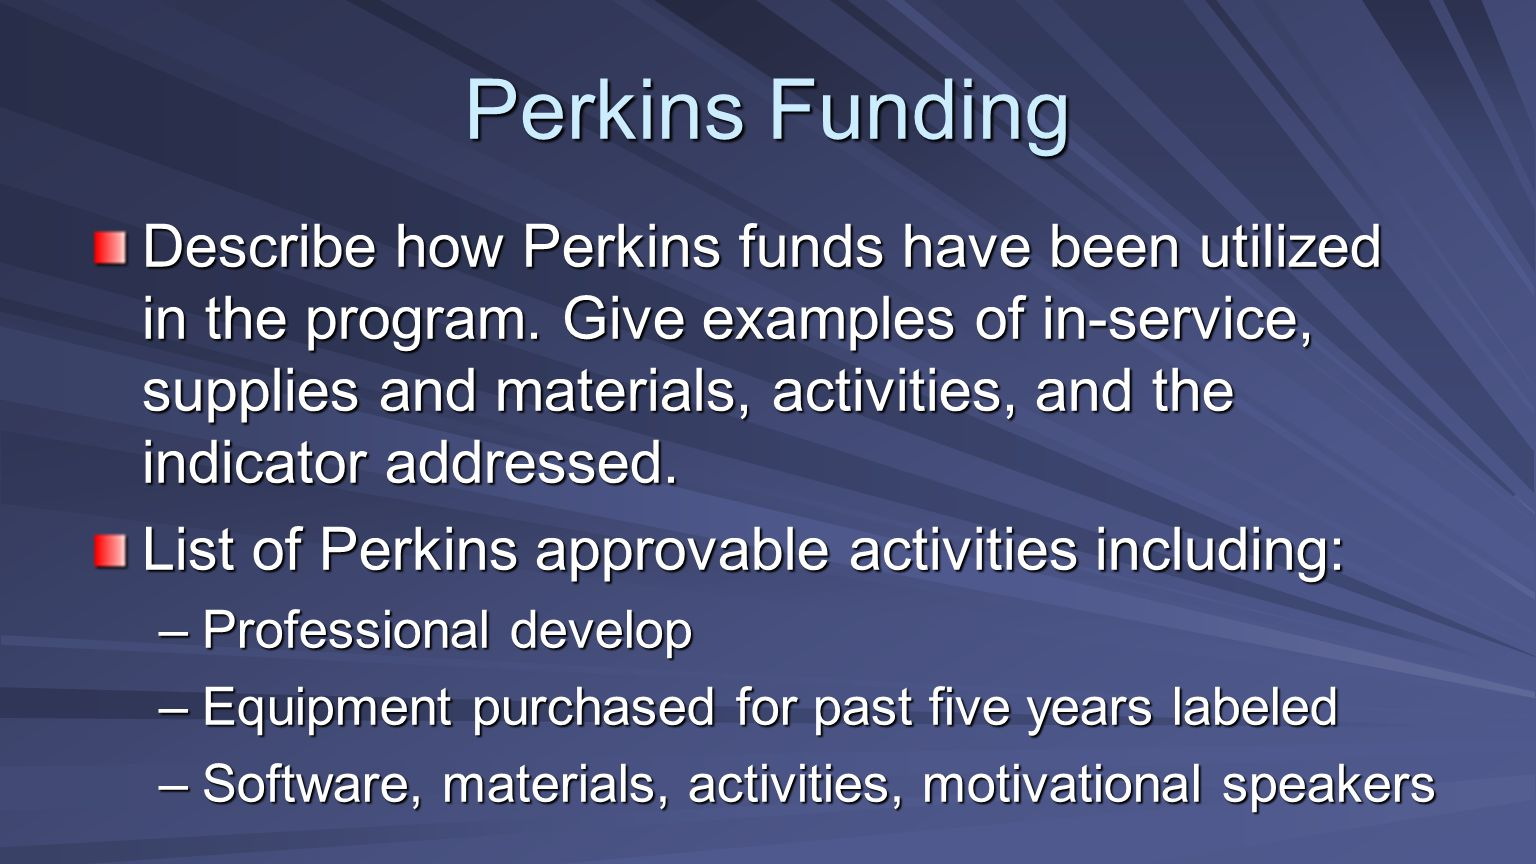 Perkins Funding Describe how Perkins funds have been utilized in the program. Give examples of in-service, supplies and materials, activities, and the